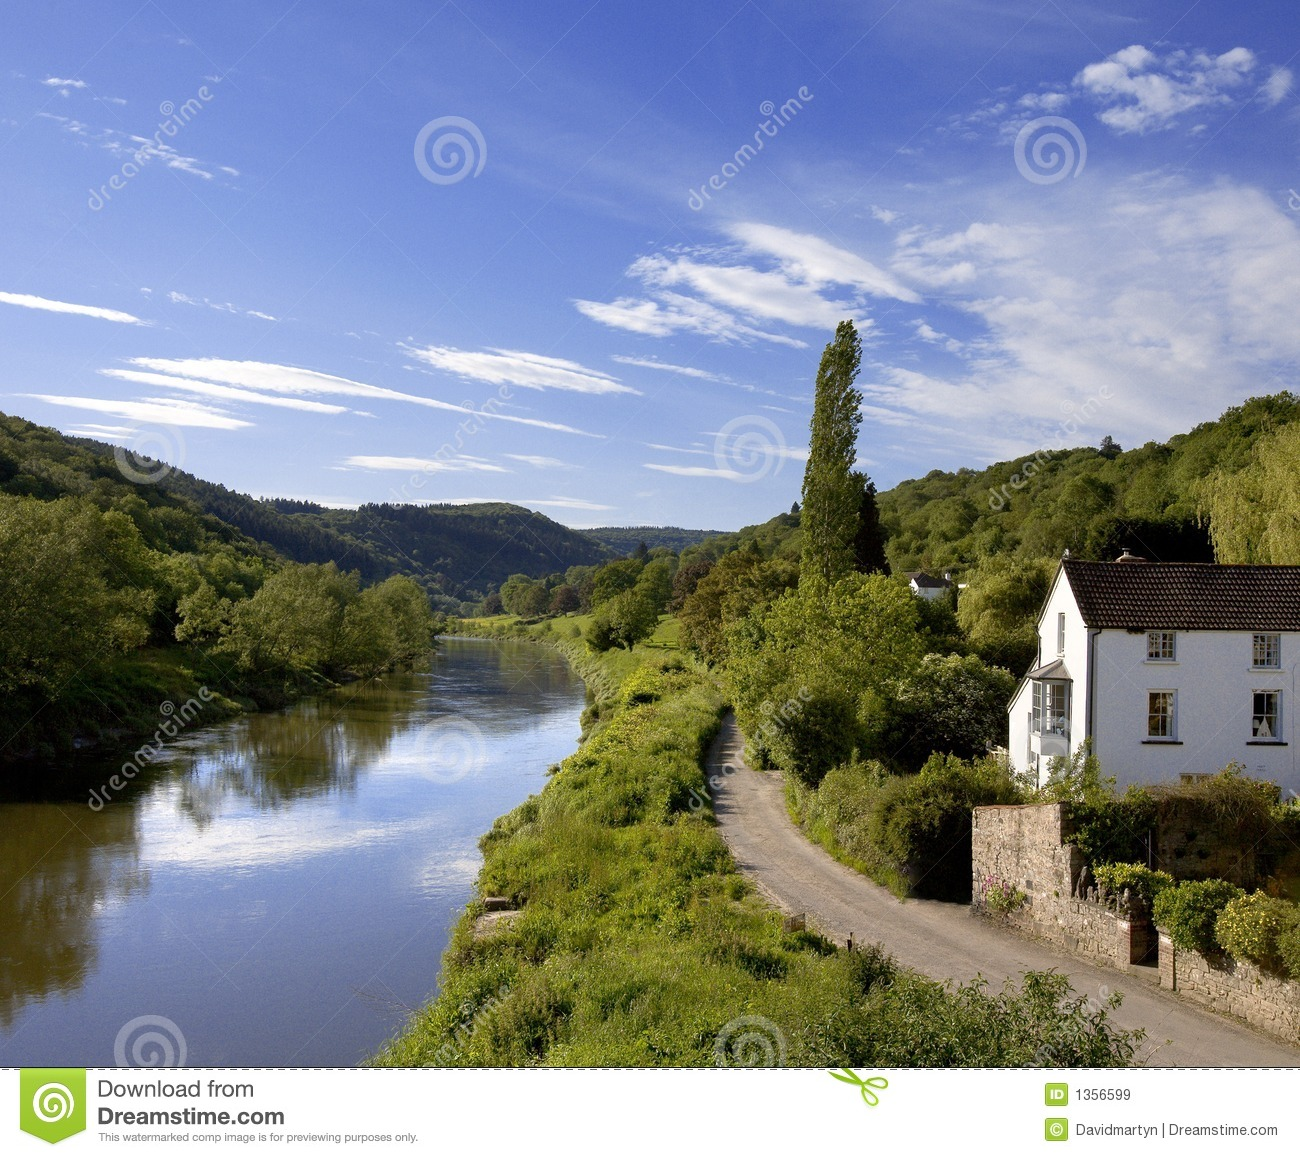 River Wye The Wye Valley Gloucestershire Monmouthshire